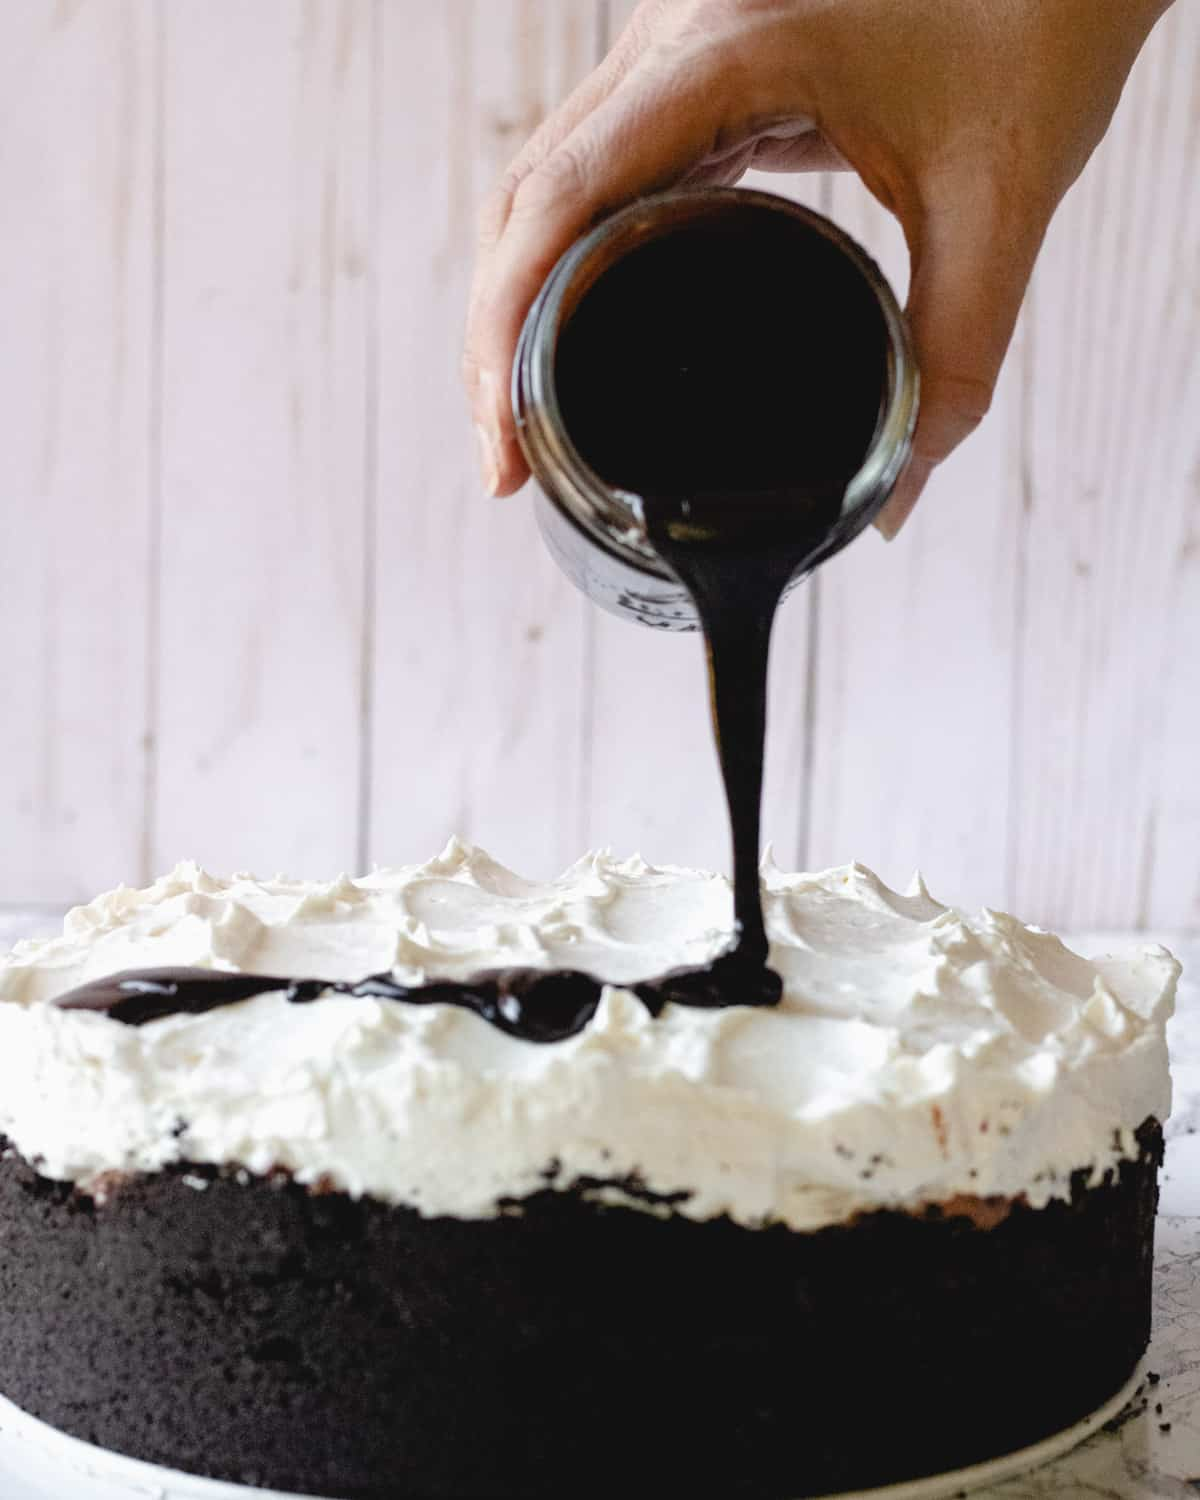 Mississippi Mud Pie with hot fudge being poured out of a jar over the top of the pie.